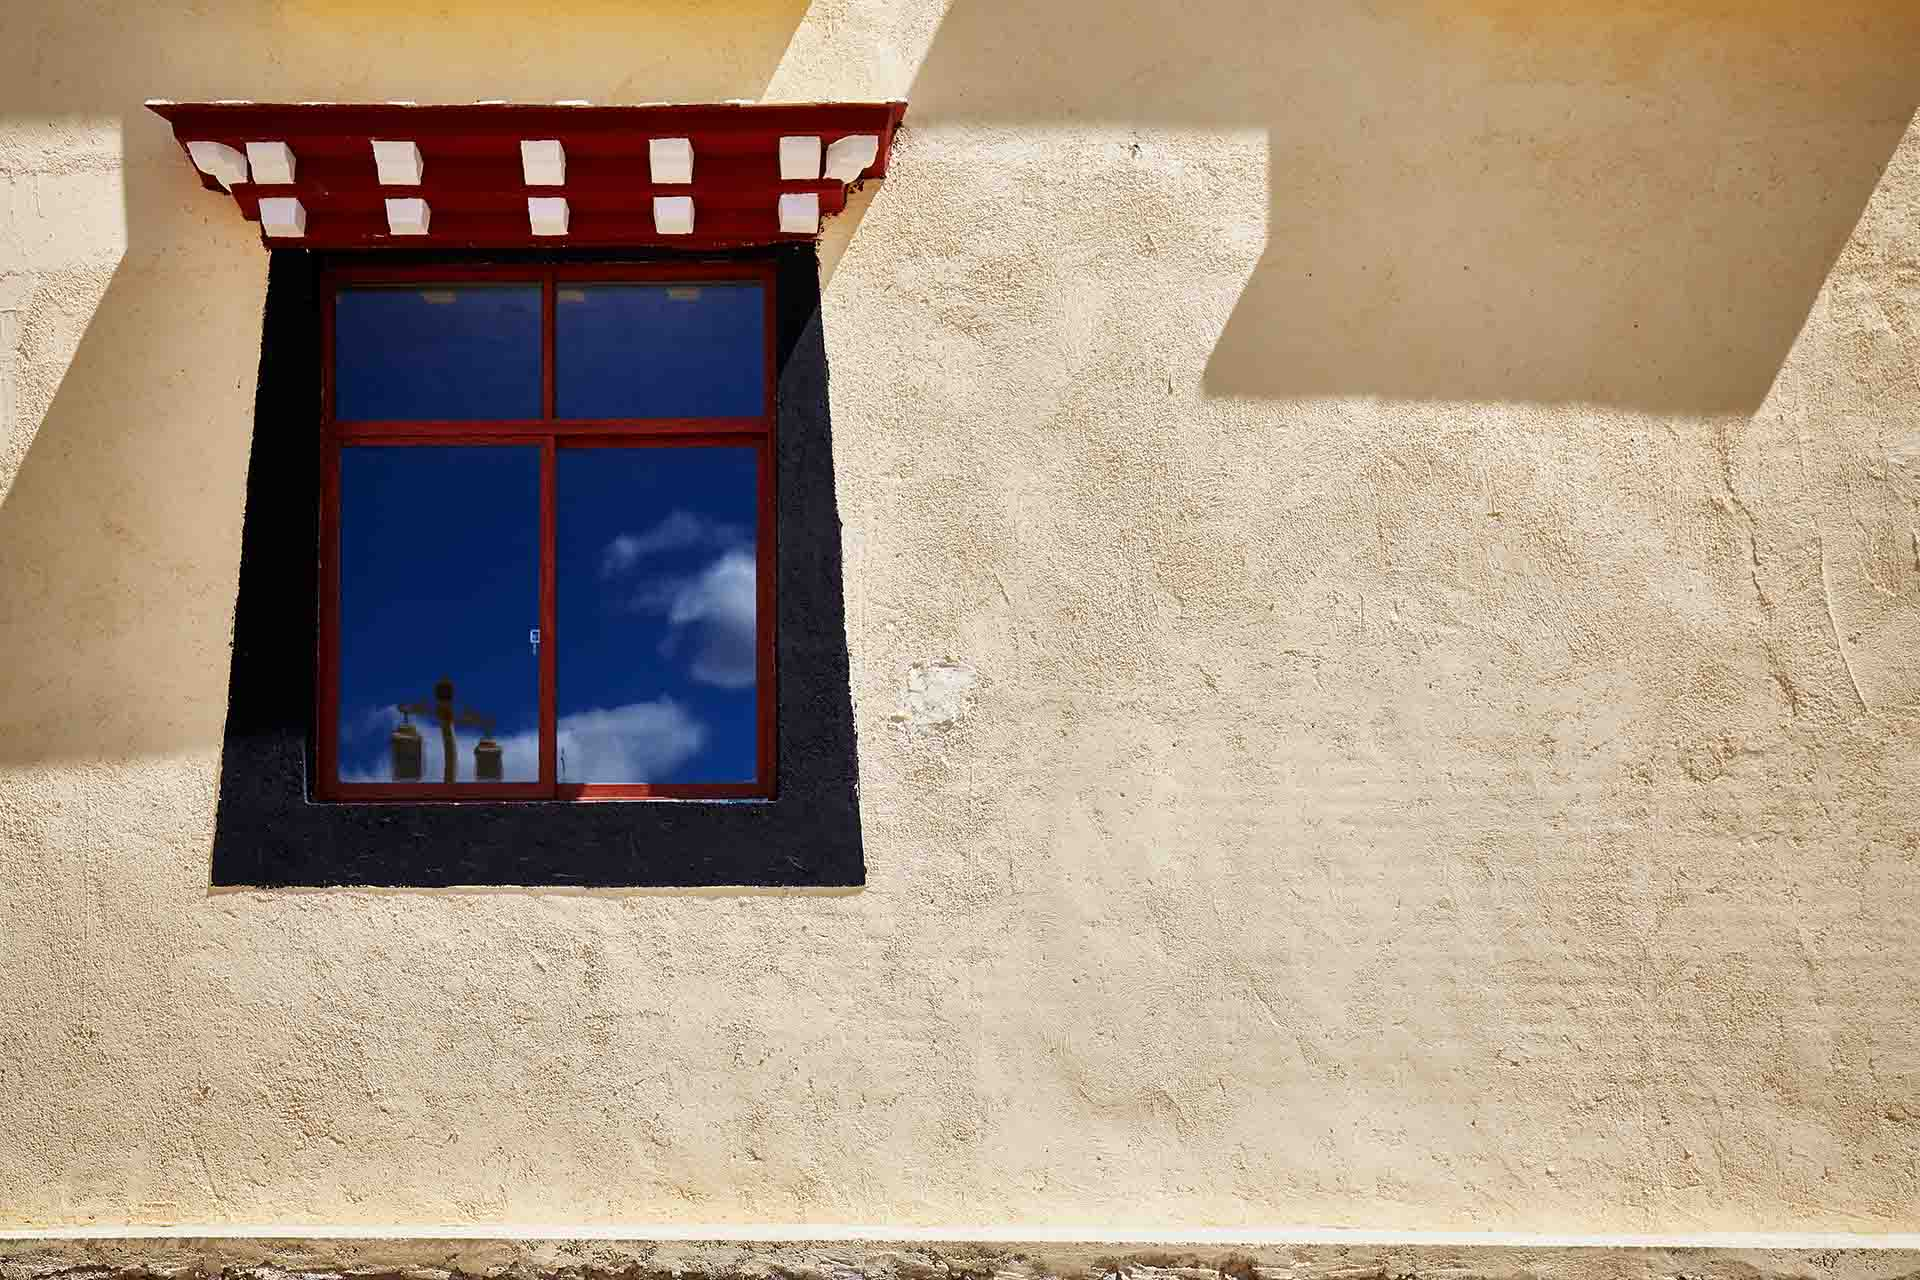 What are Signs or Windows Getting Old and Wornout?